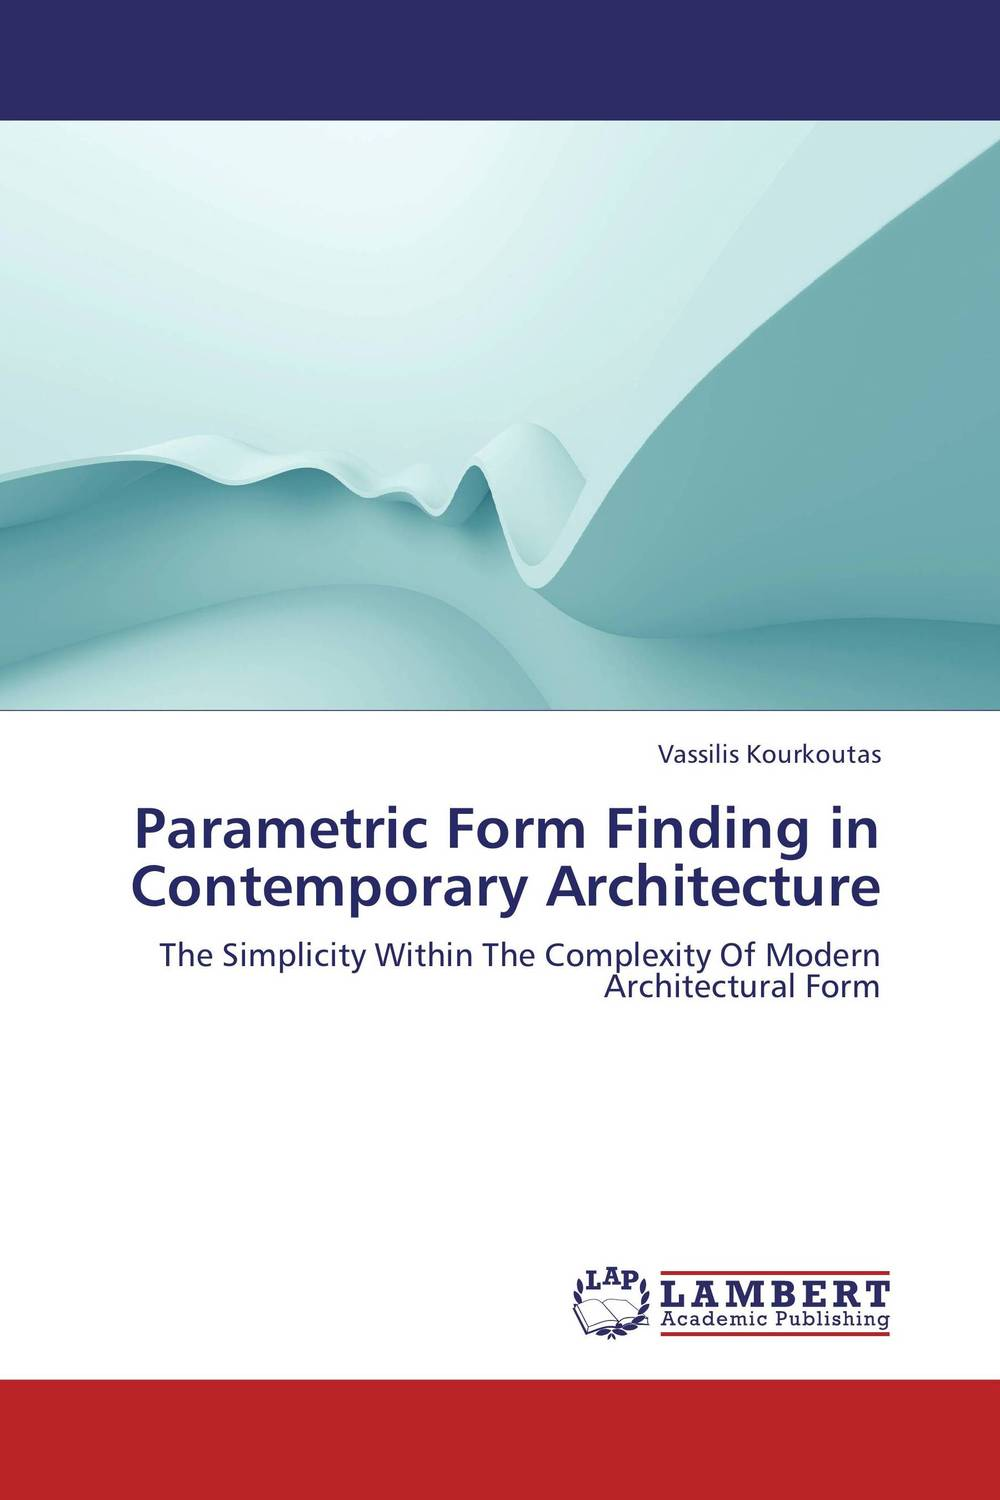 Parametric Form Finding in Contemporary Architecture